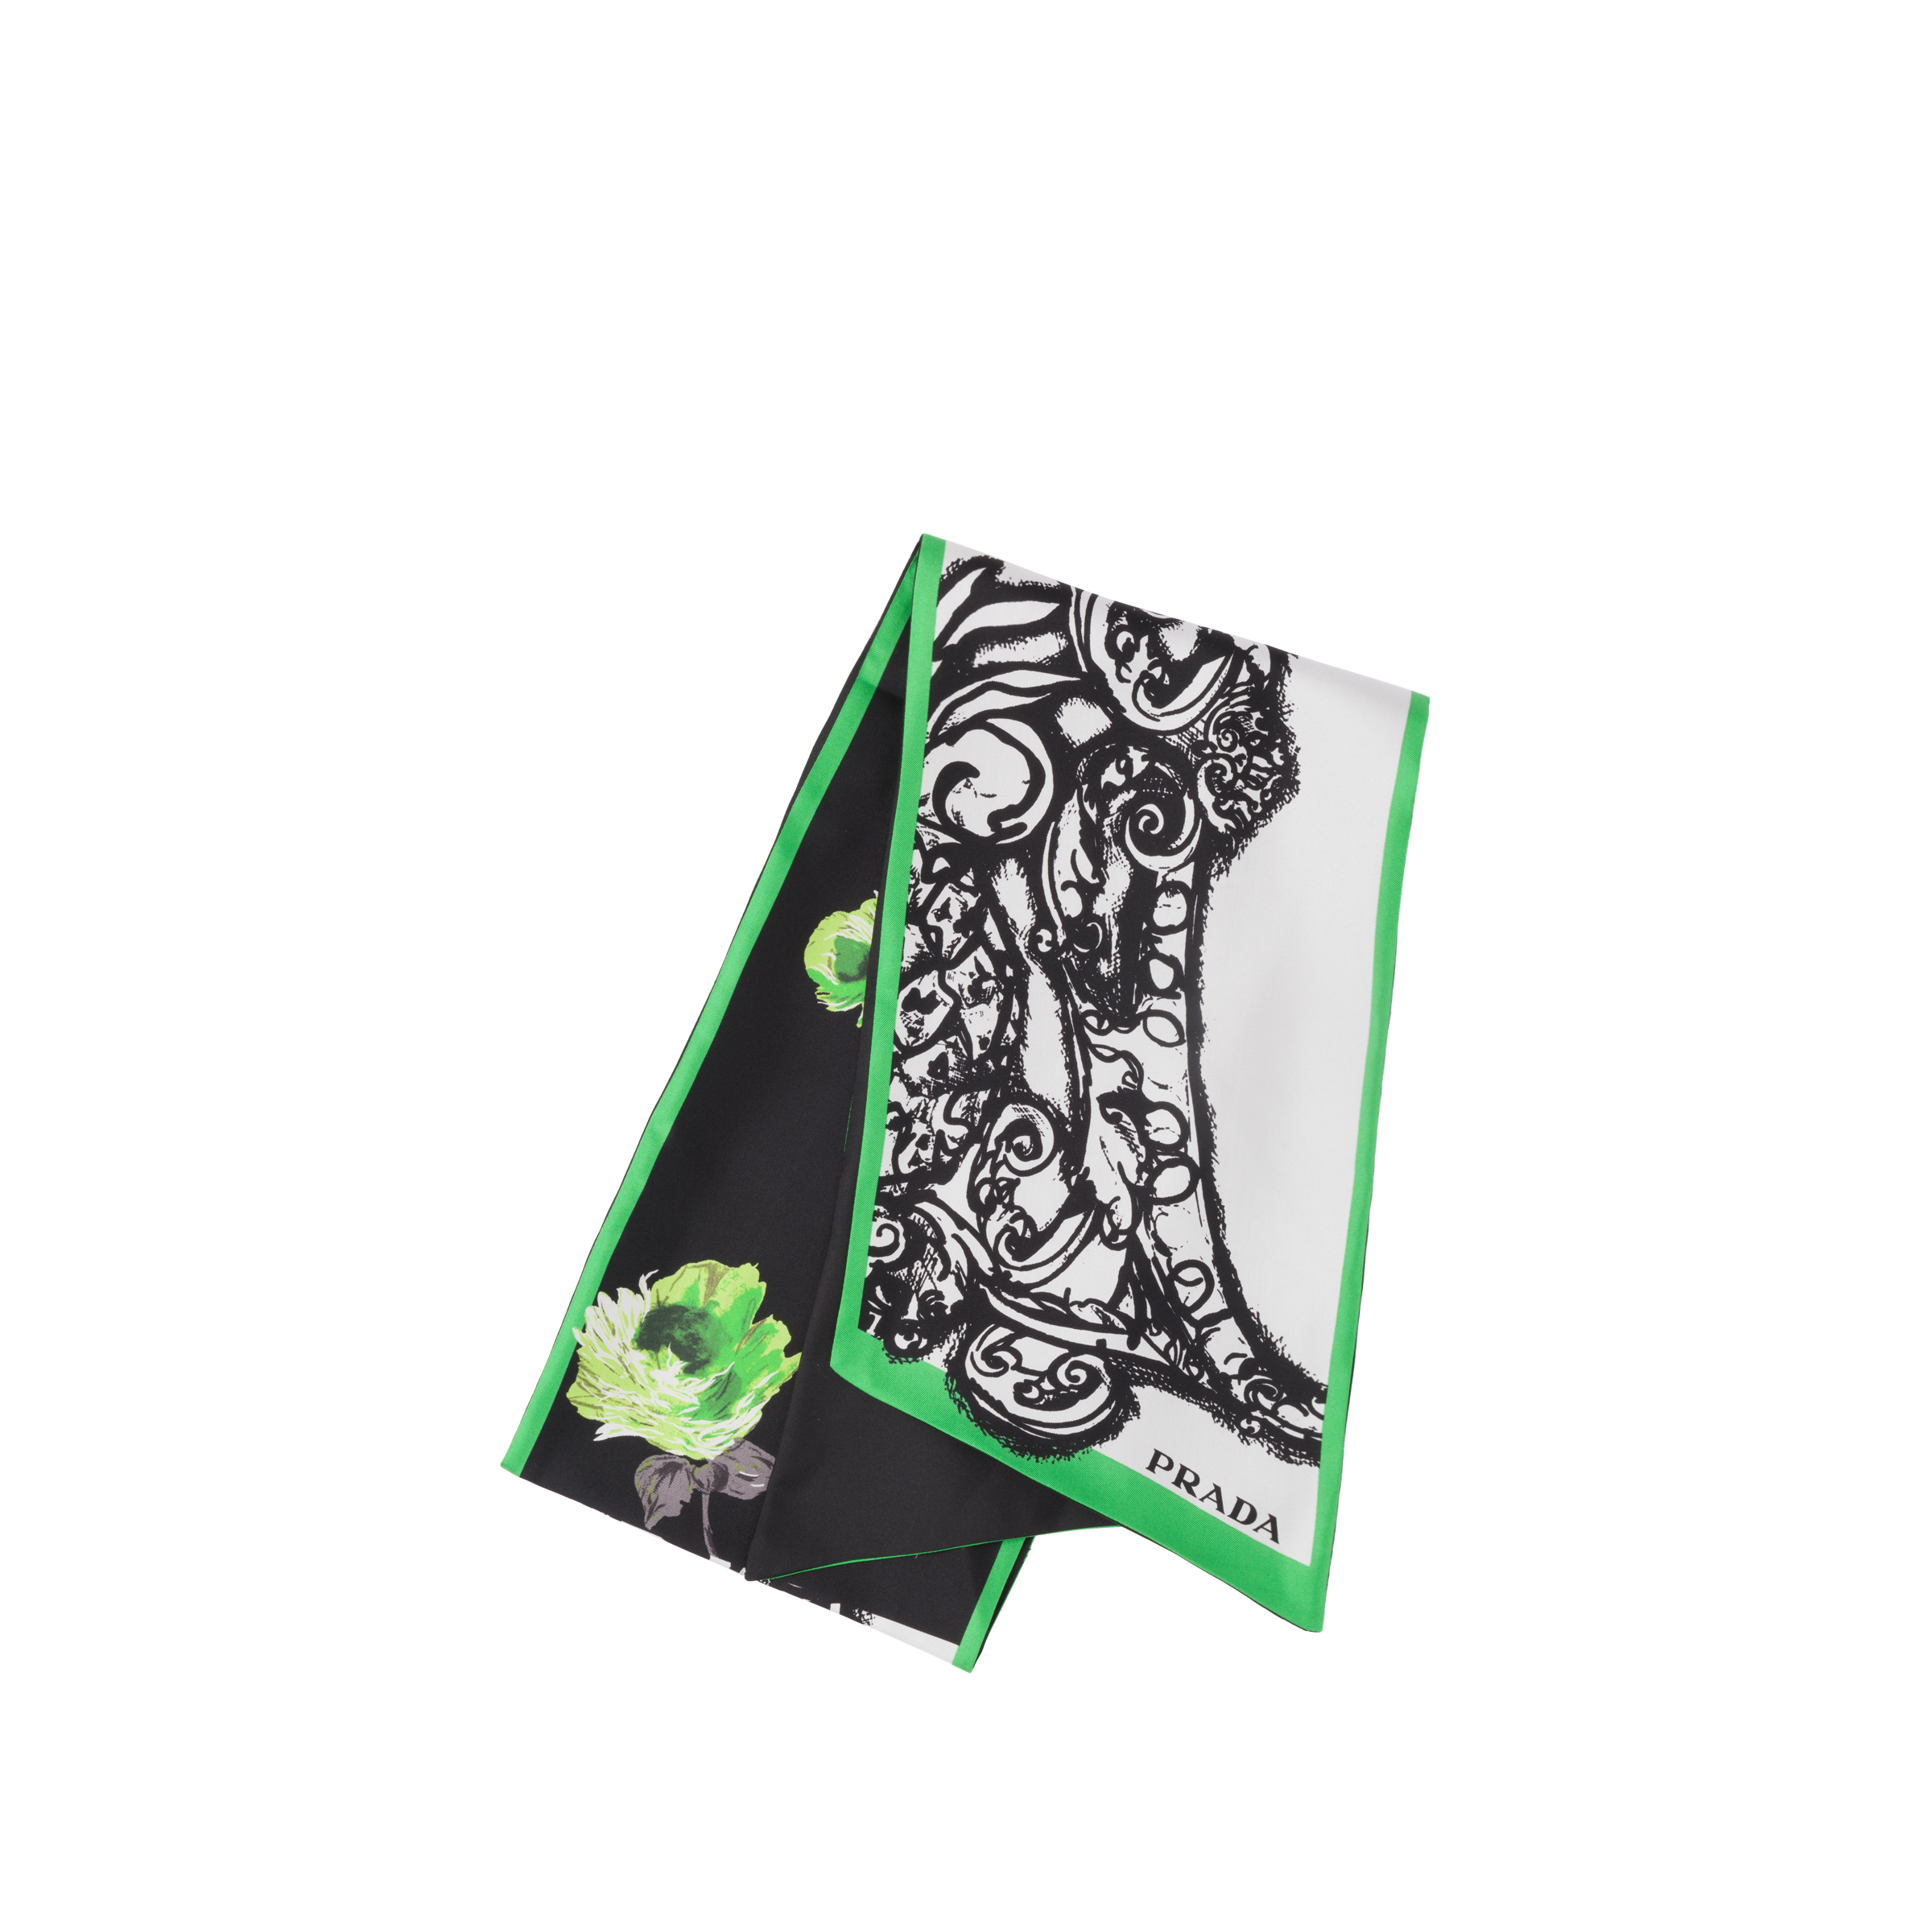 Riddler drawing transparent. Double match baroque printed